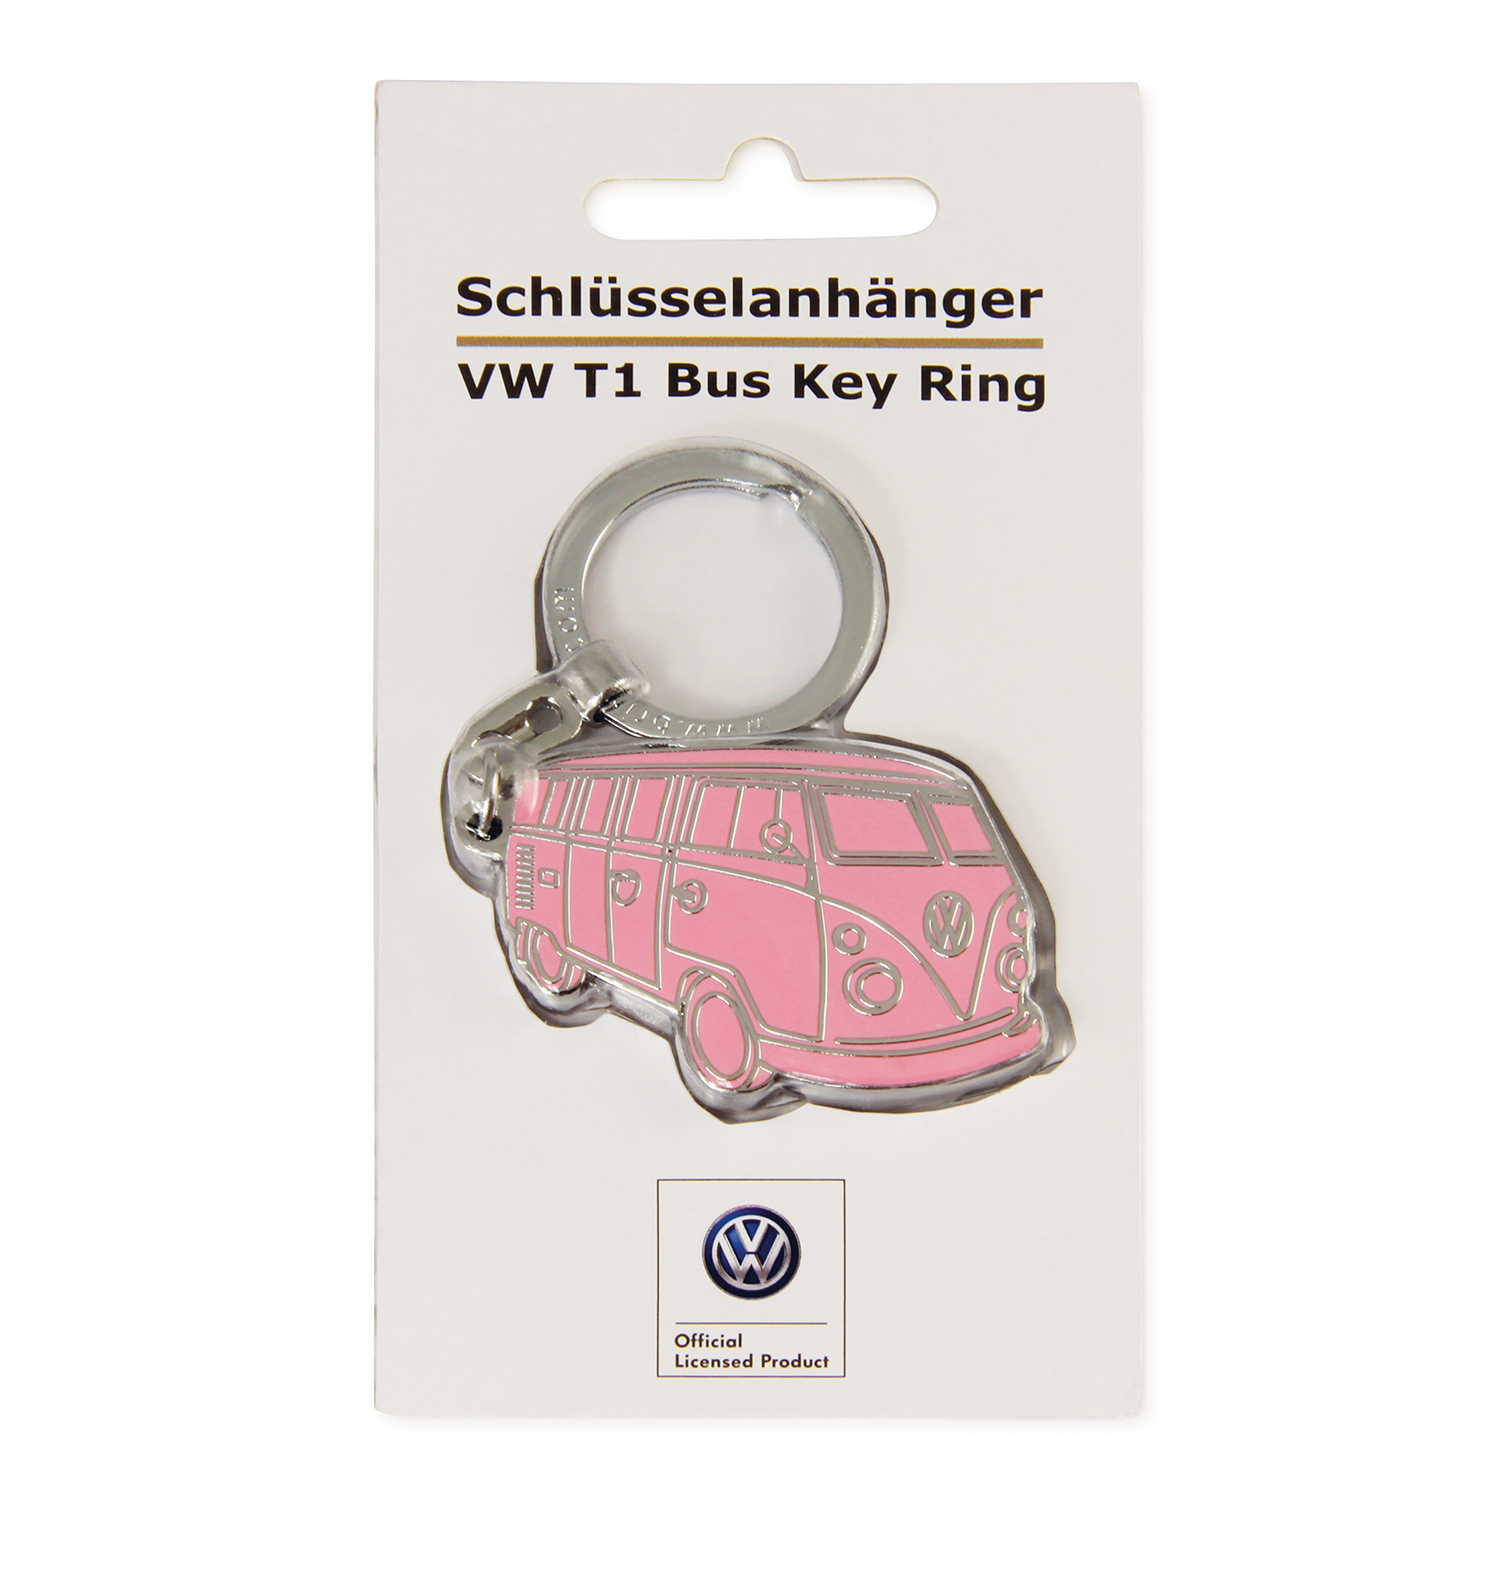 vw t1 bus schl sselanh nger in sichtverpackung. Black Bedroom Furniture Sets. Home Design Ideas